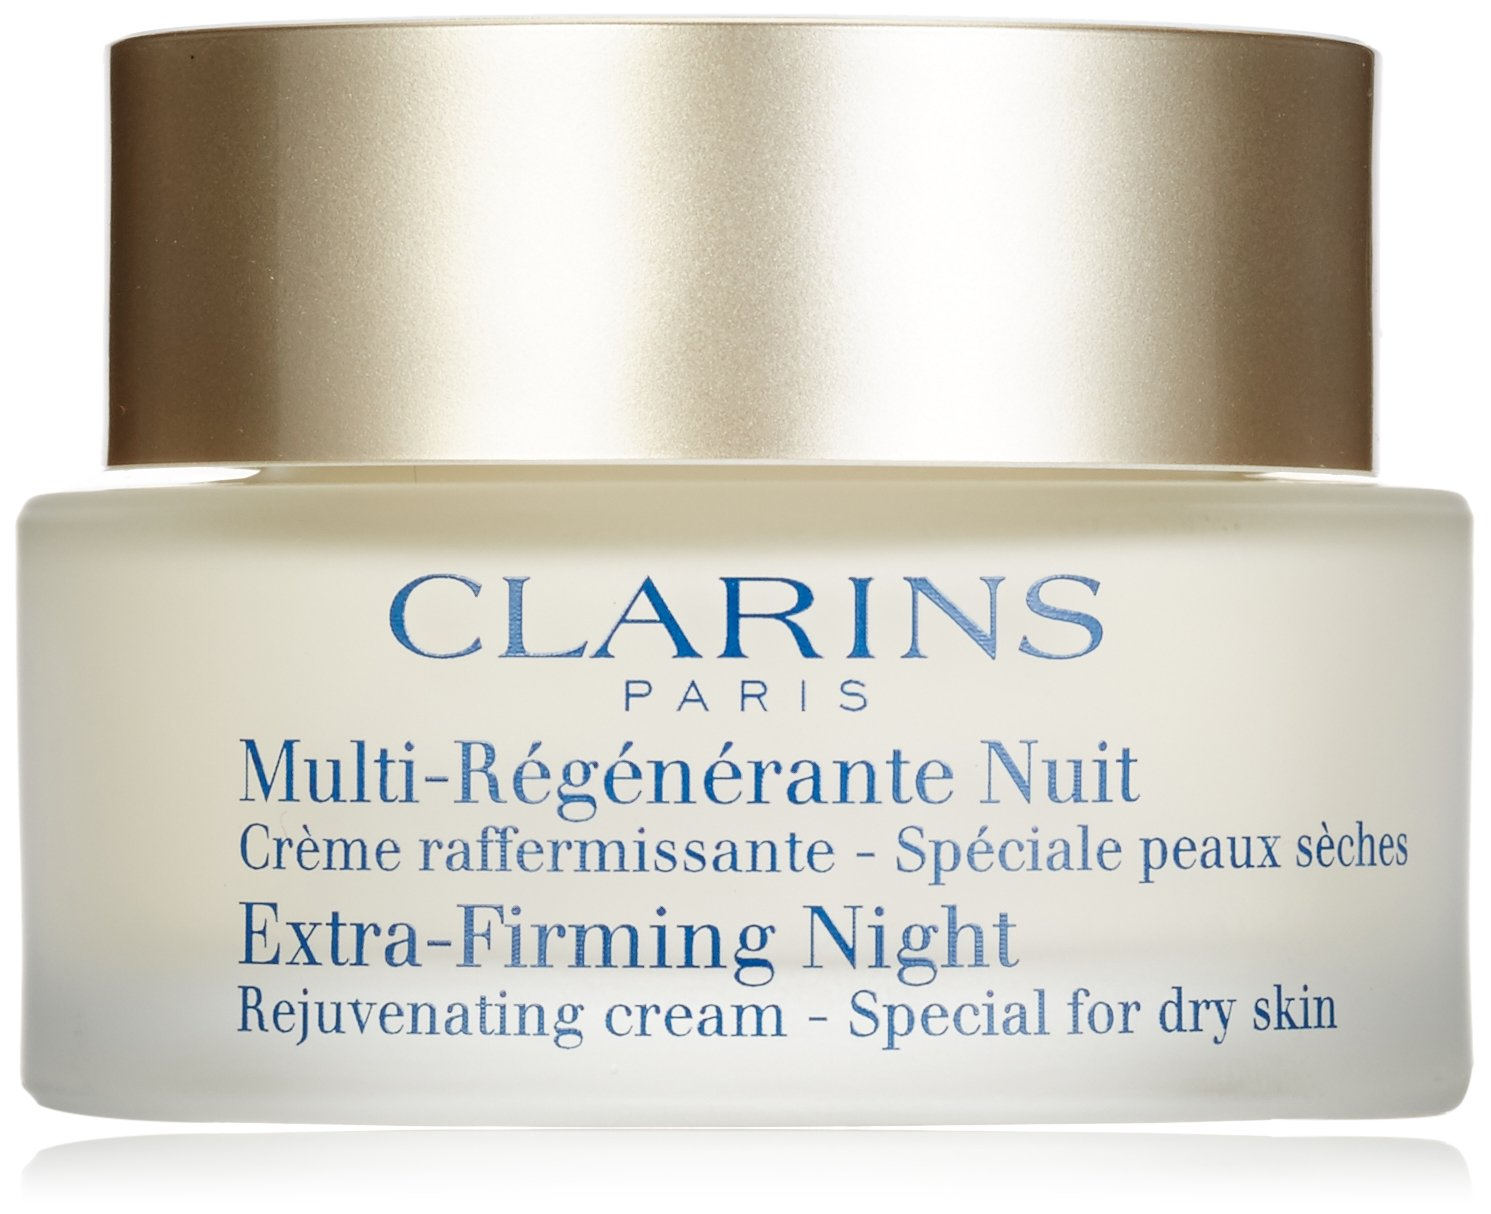 Clarins Exta-Firming Night Special For Dry Skin, 50 ml 3380810034073 CLA003407